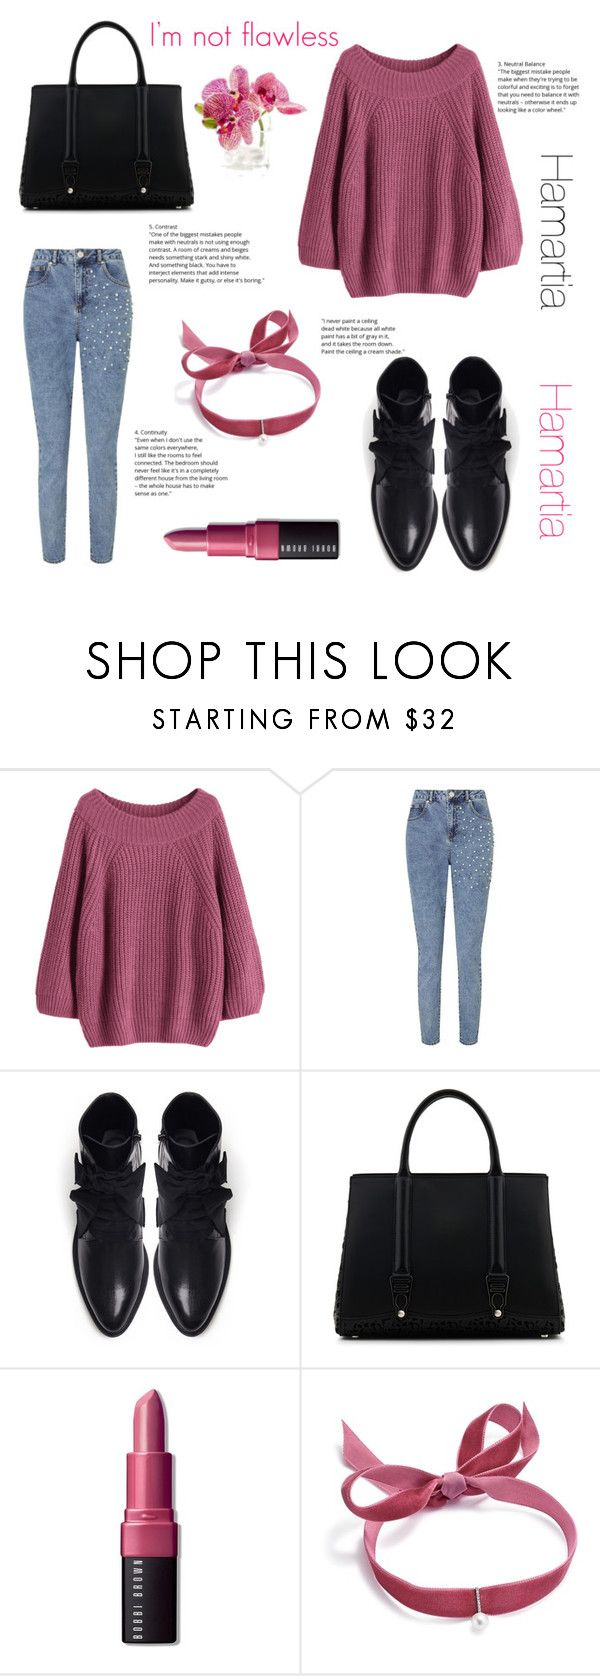 """""""Colored Sweater: Hamartia"""" by yosifova ❤ liked on Polyvore featuring Miss Selfridge, A.F. Vandevorst, La Perla, Bobbi Brown Cosmetics, Mateo, Winter, casual, contest, outfit and autumn"""